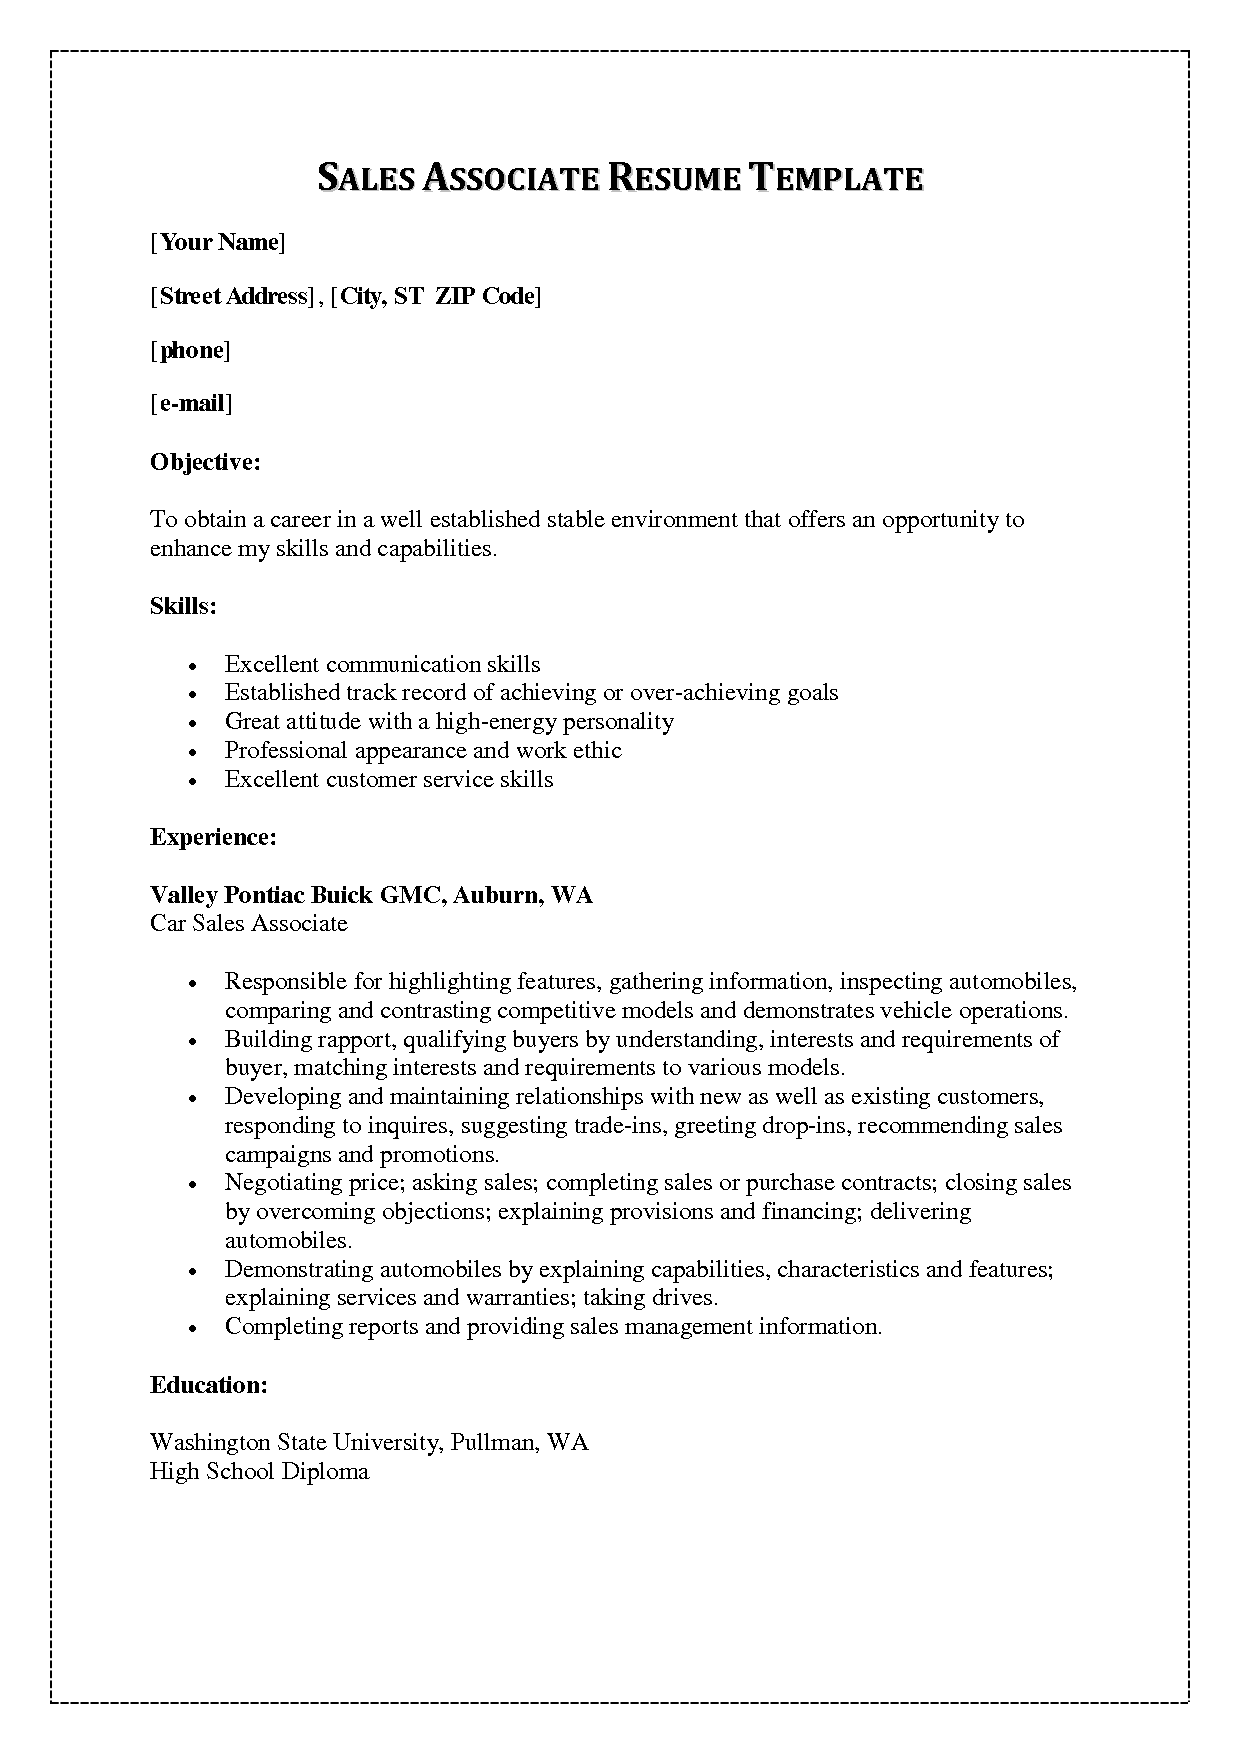 Sample Salesperson Resume Sales Resume Skills Associate  Sample Skills Based Resume